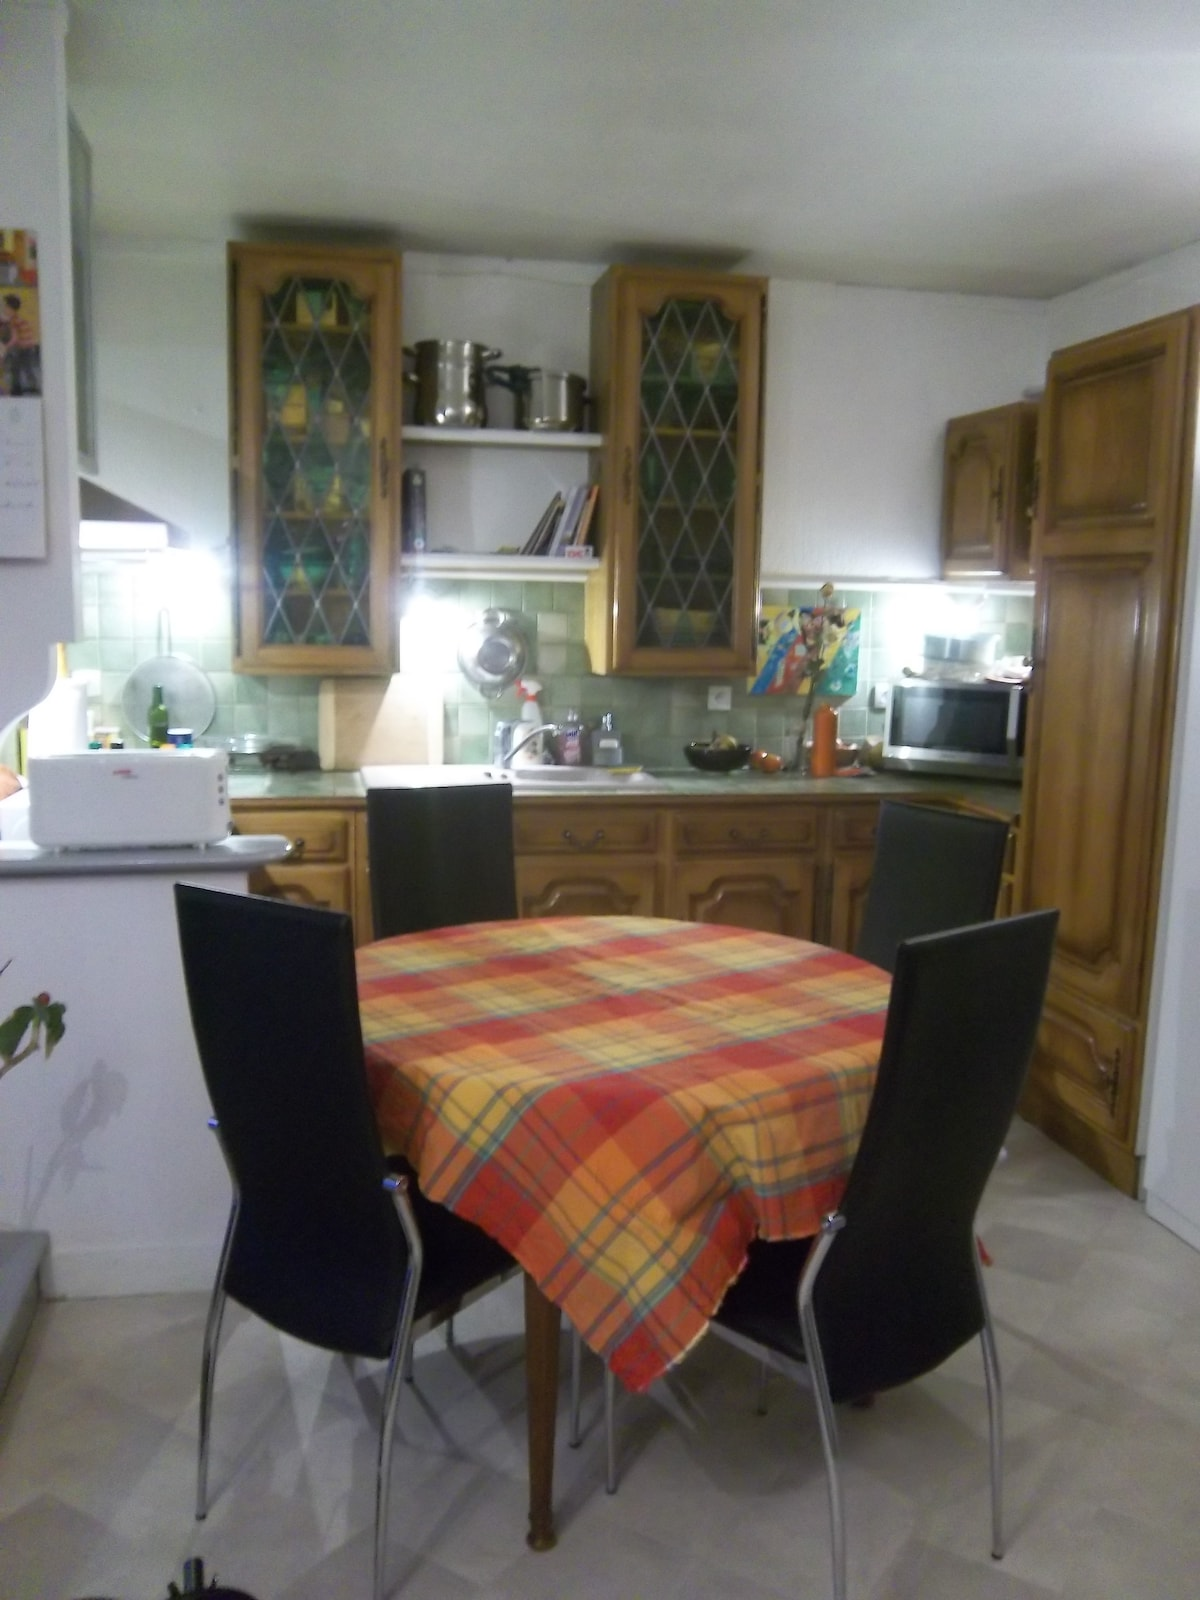 the kitchen with all facilitites